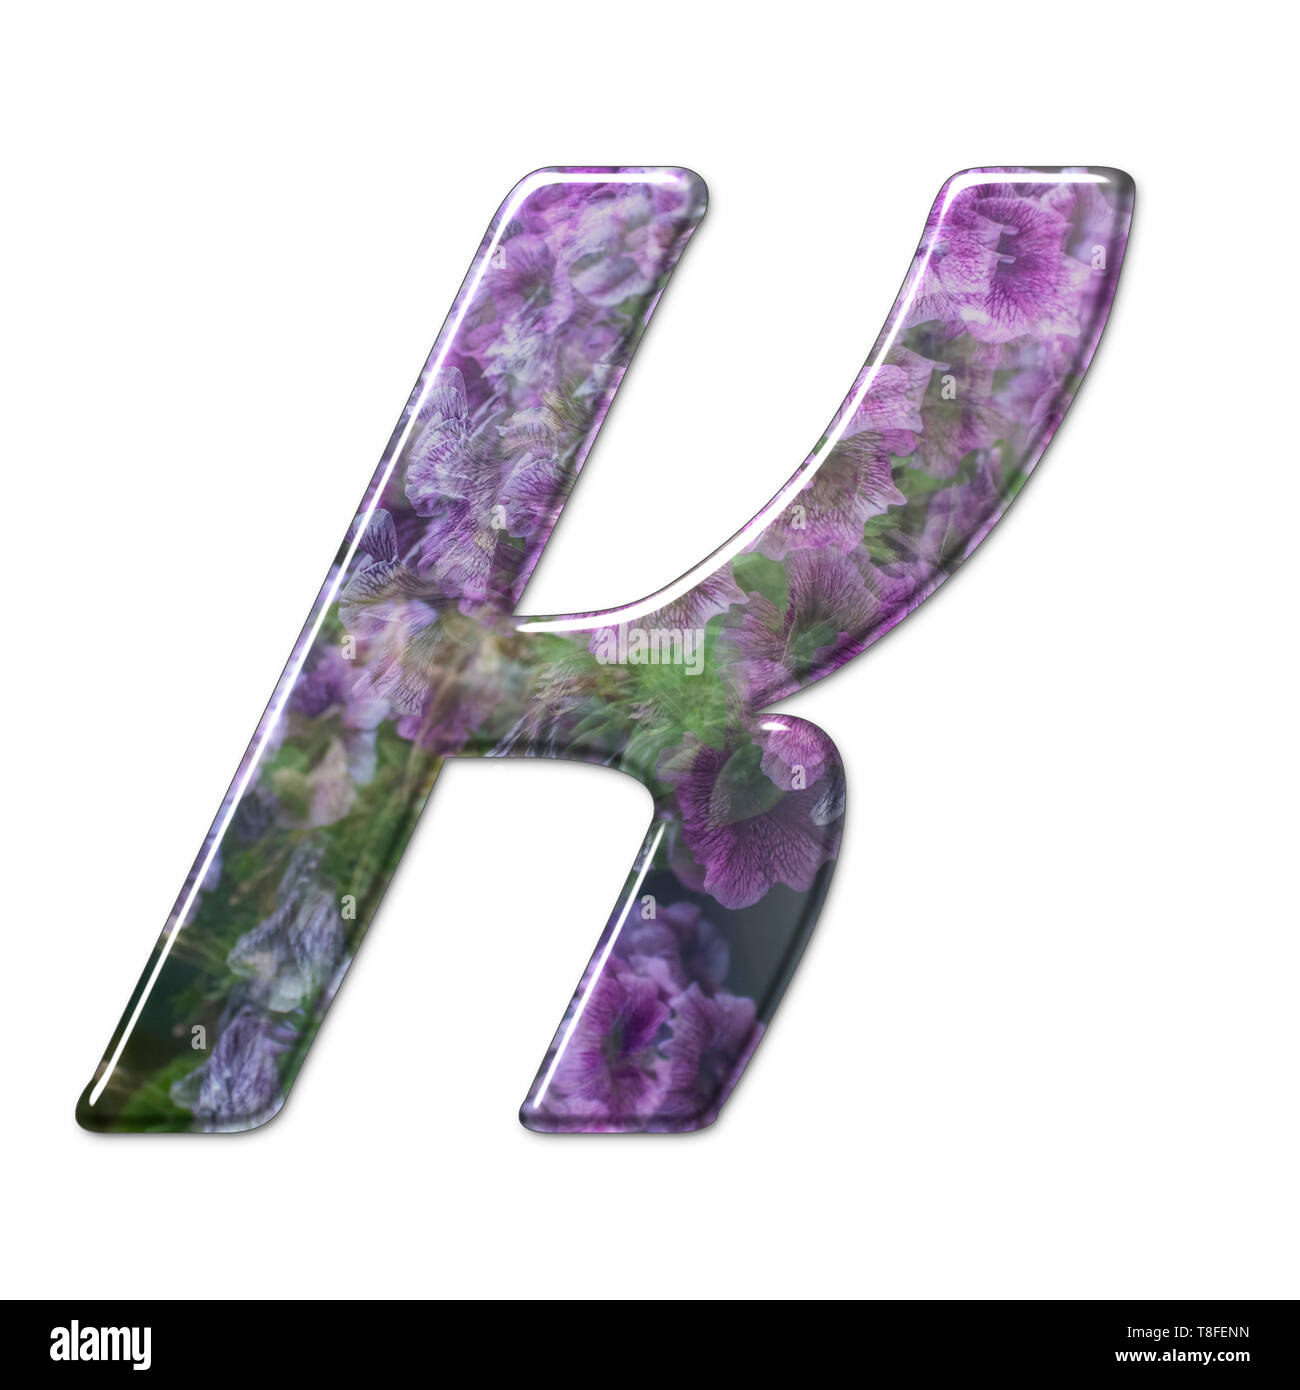 The Capitol Letter K Part of a set of letters, Numbers and symbols of 3D Alphabet made with a floral image on white background - Stock Image